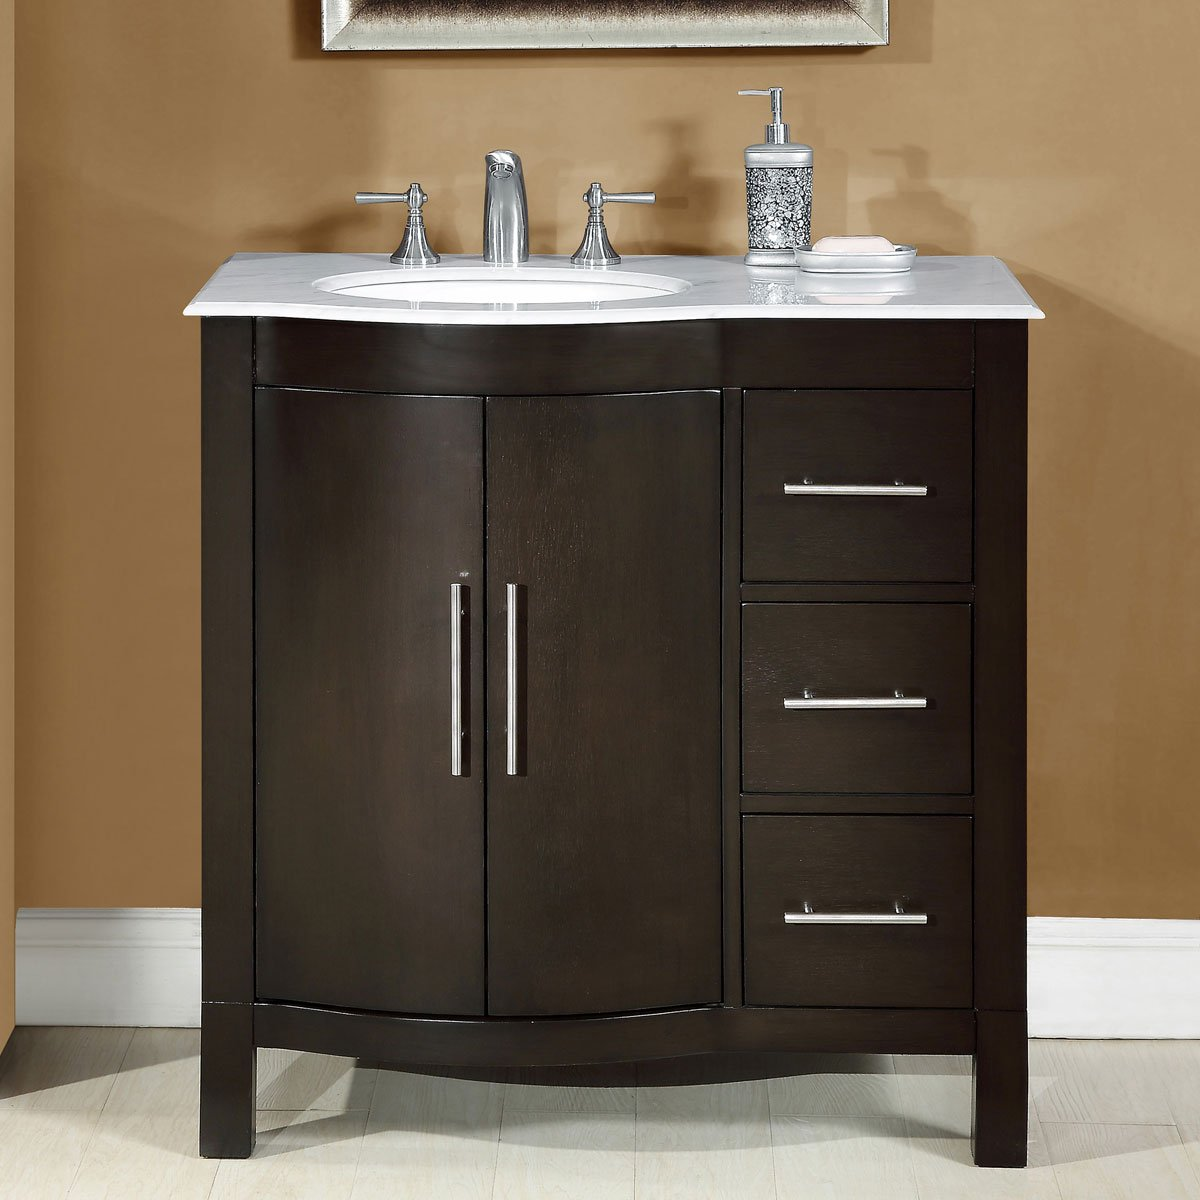 Silkroad Exclusive Single Left Sink Bathroom Vanity with Furniture Cabinet, 36-Inch by Silkroad Exclusive